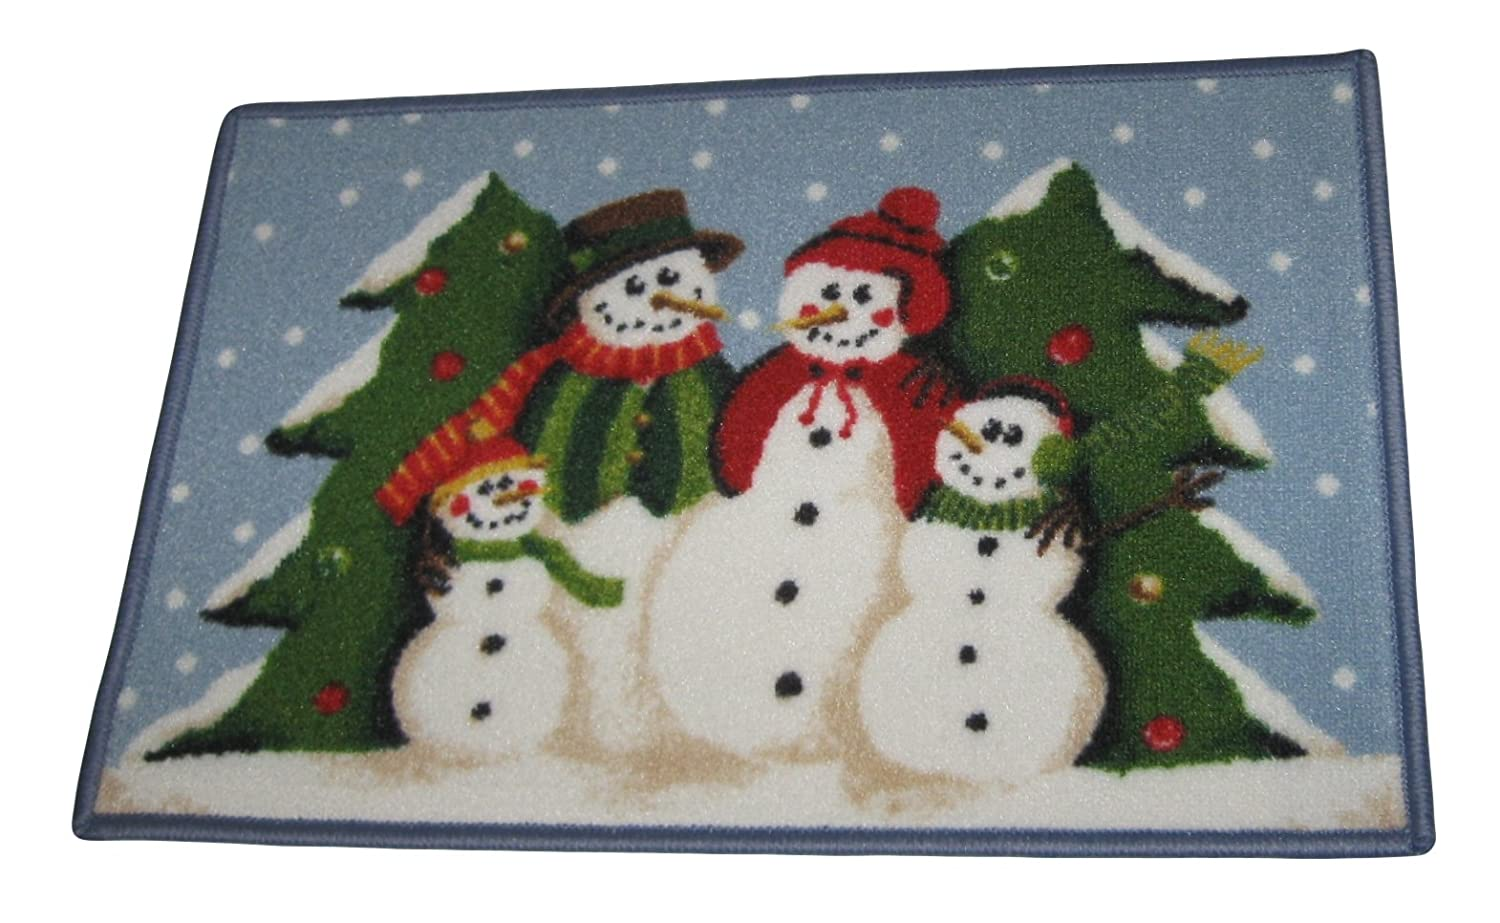 Snowman Family with Christmas Trees 17 Inch X 27 Inch Accent Area Rug Mat